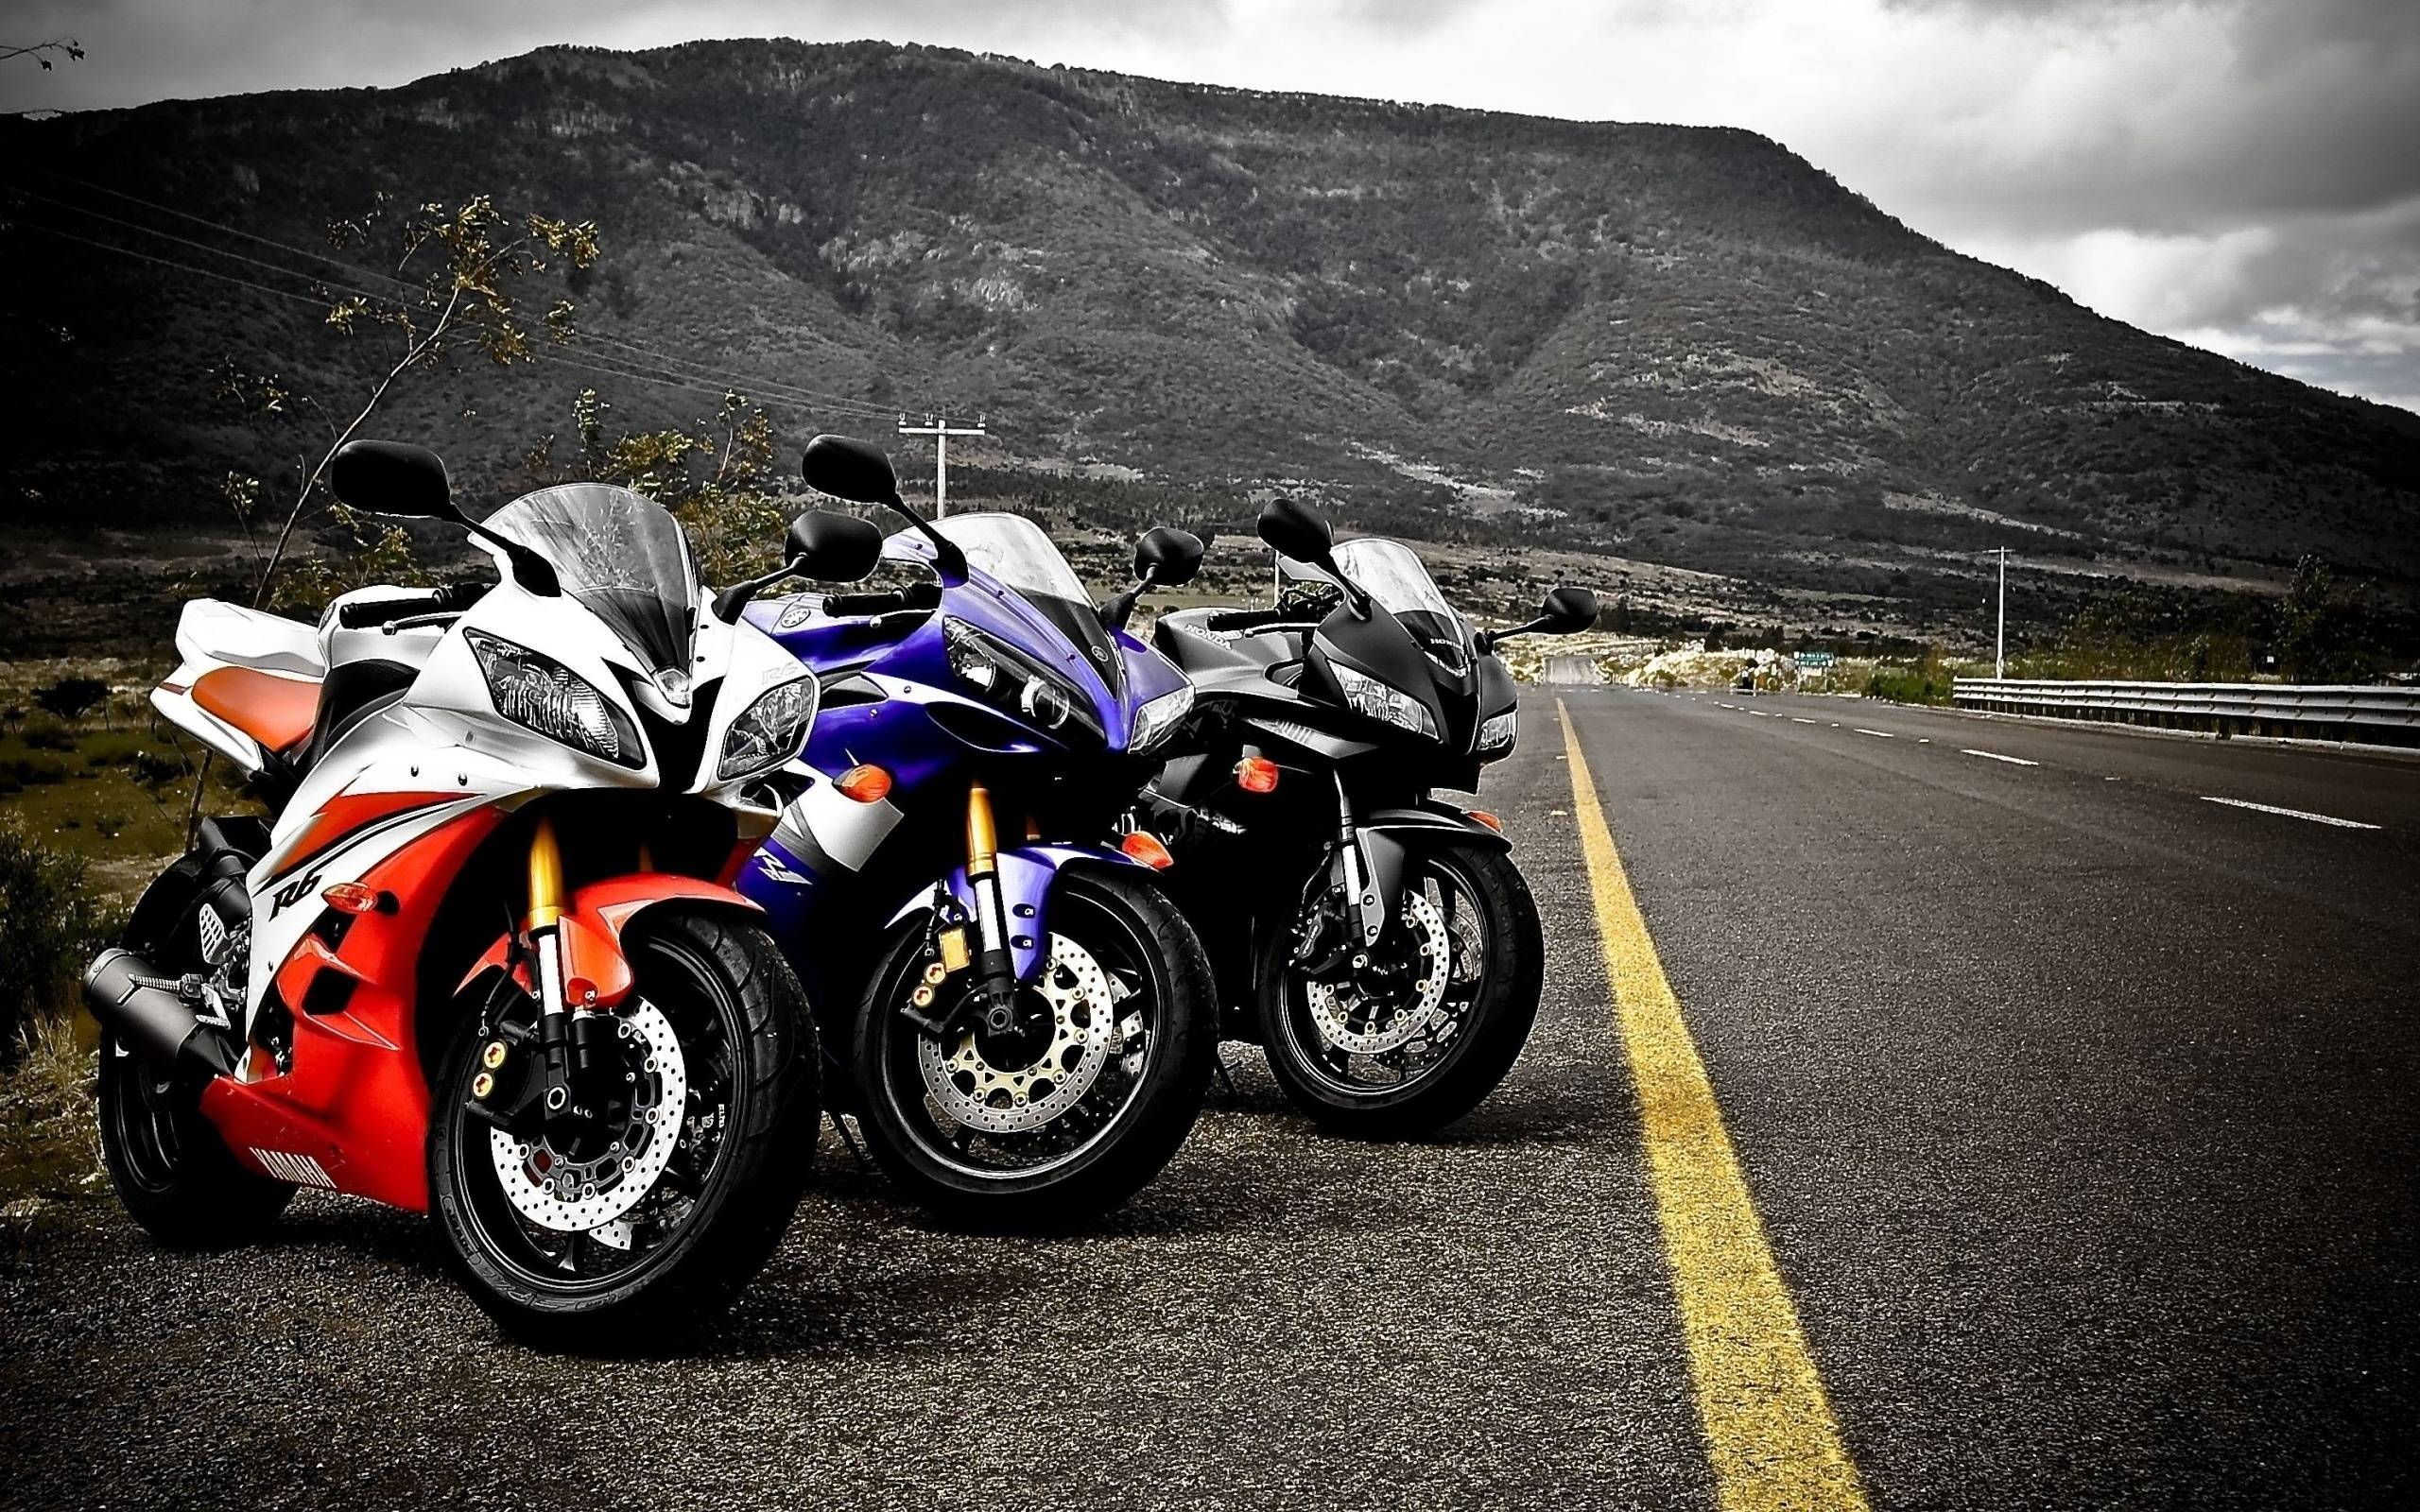 Best Motorcycle Wallpapers   Top Best Motorcycle Backgrounds 2560x1600